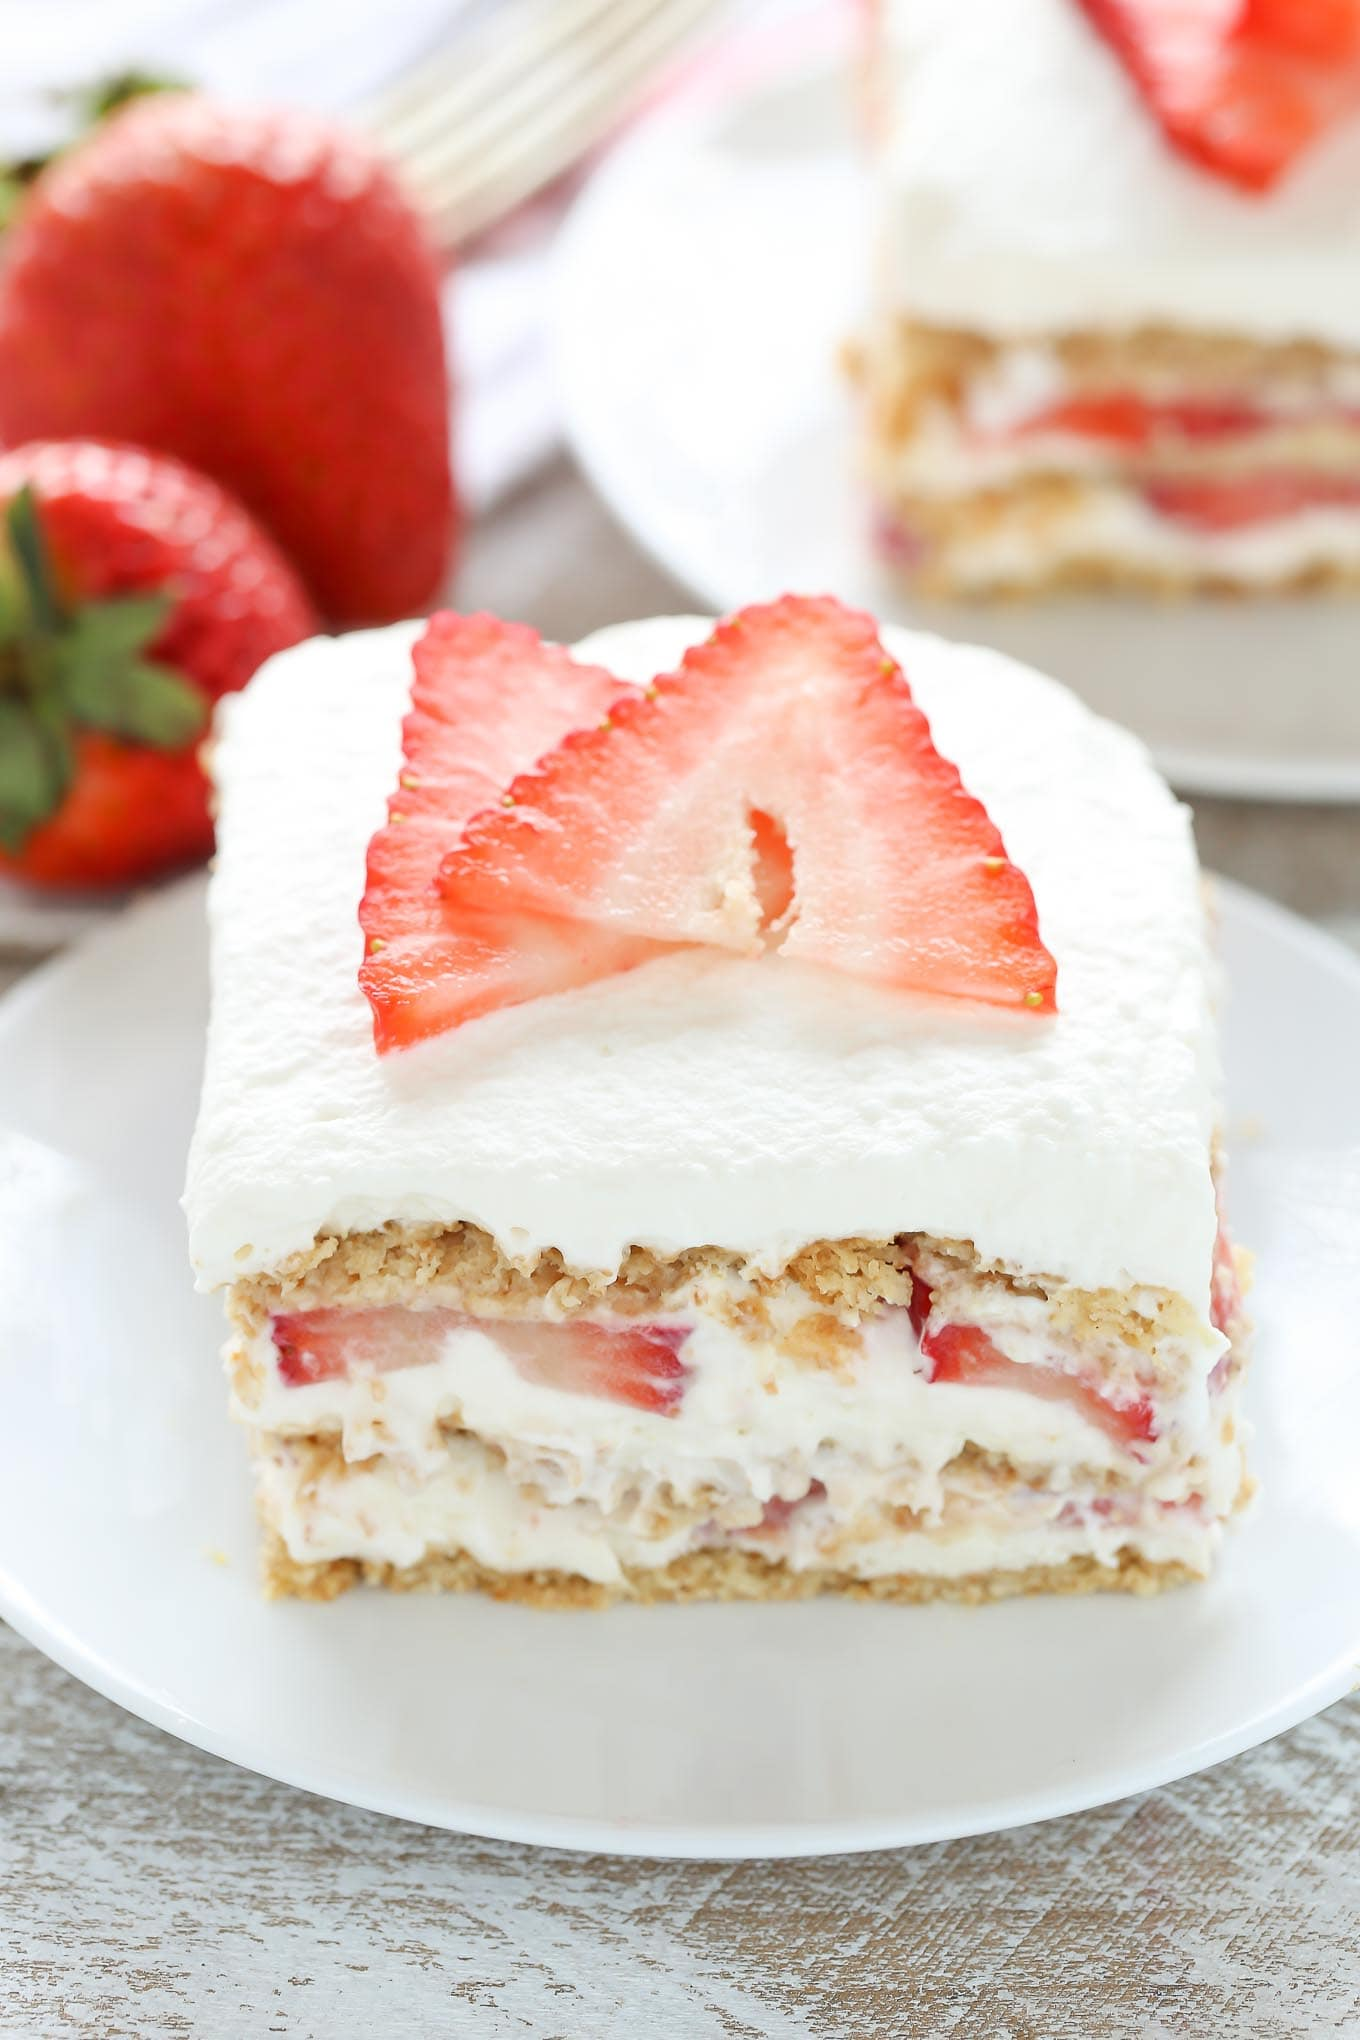 Close up of a slice of strawberry cream cheese icebox cake on a white dessert plate. Another slice and some fresh berries rest in the background.